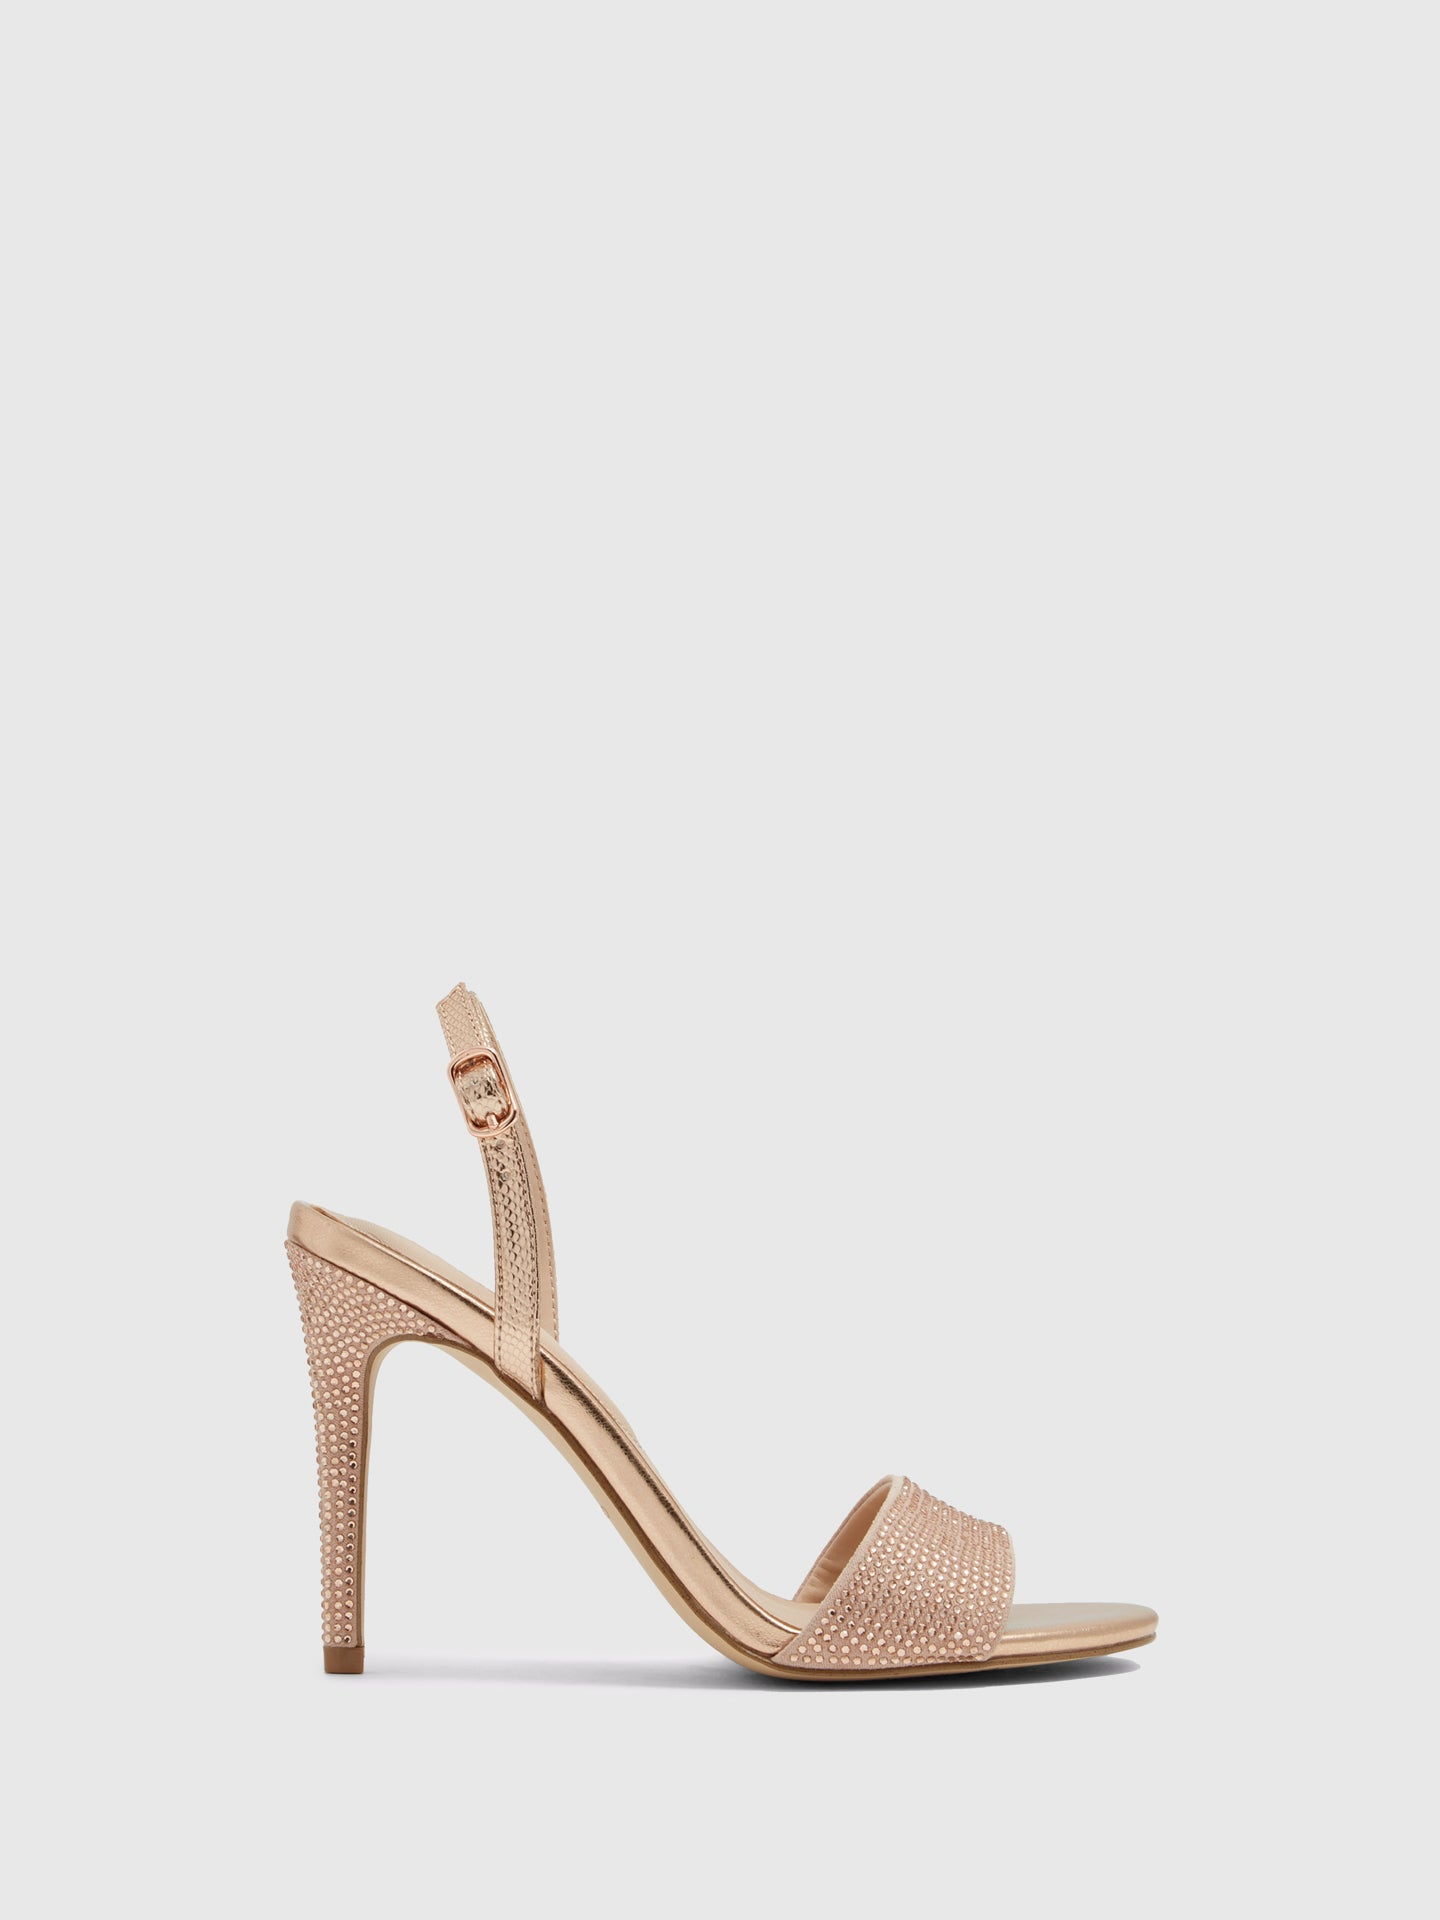 Aldo RoseGold Sling-Back Pumps Sandals